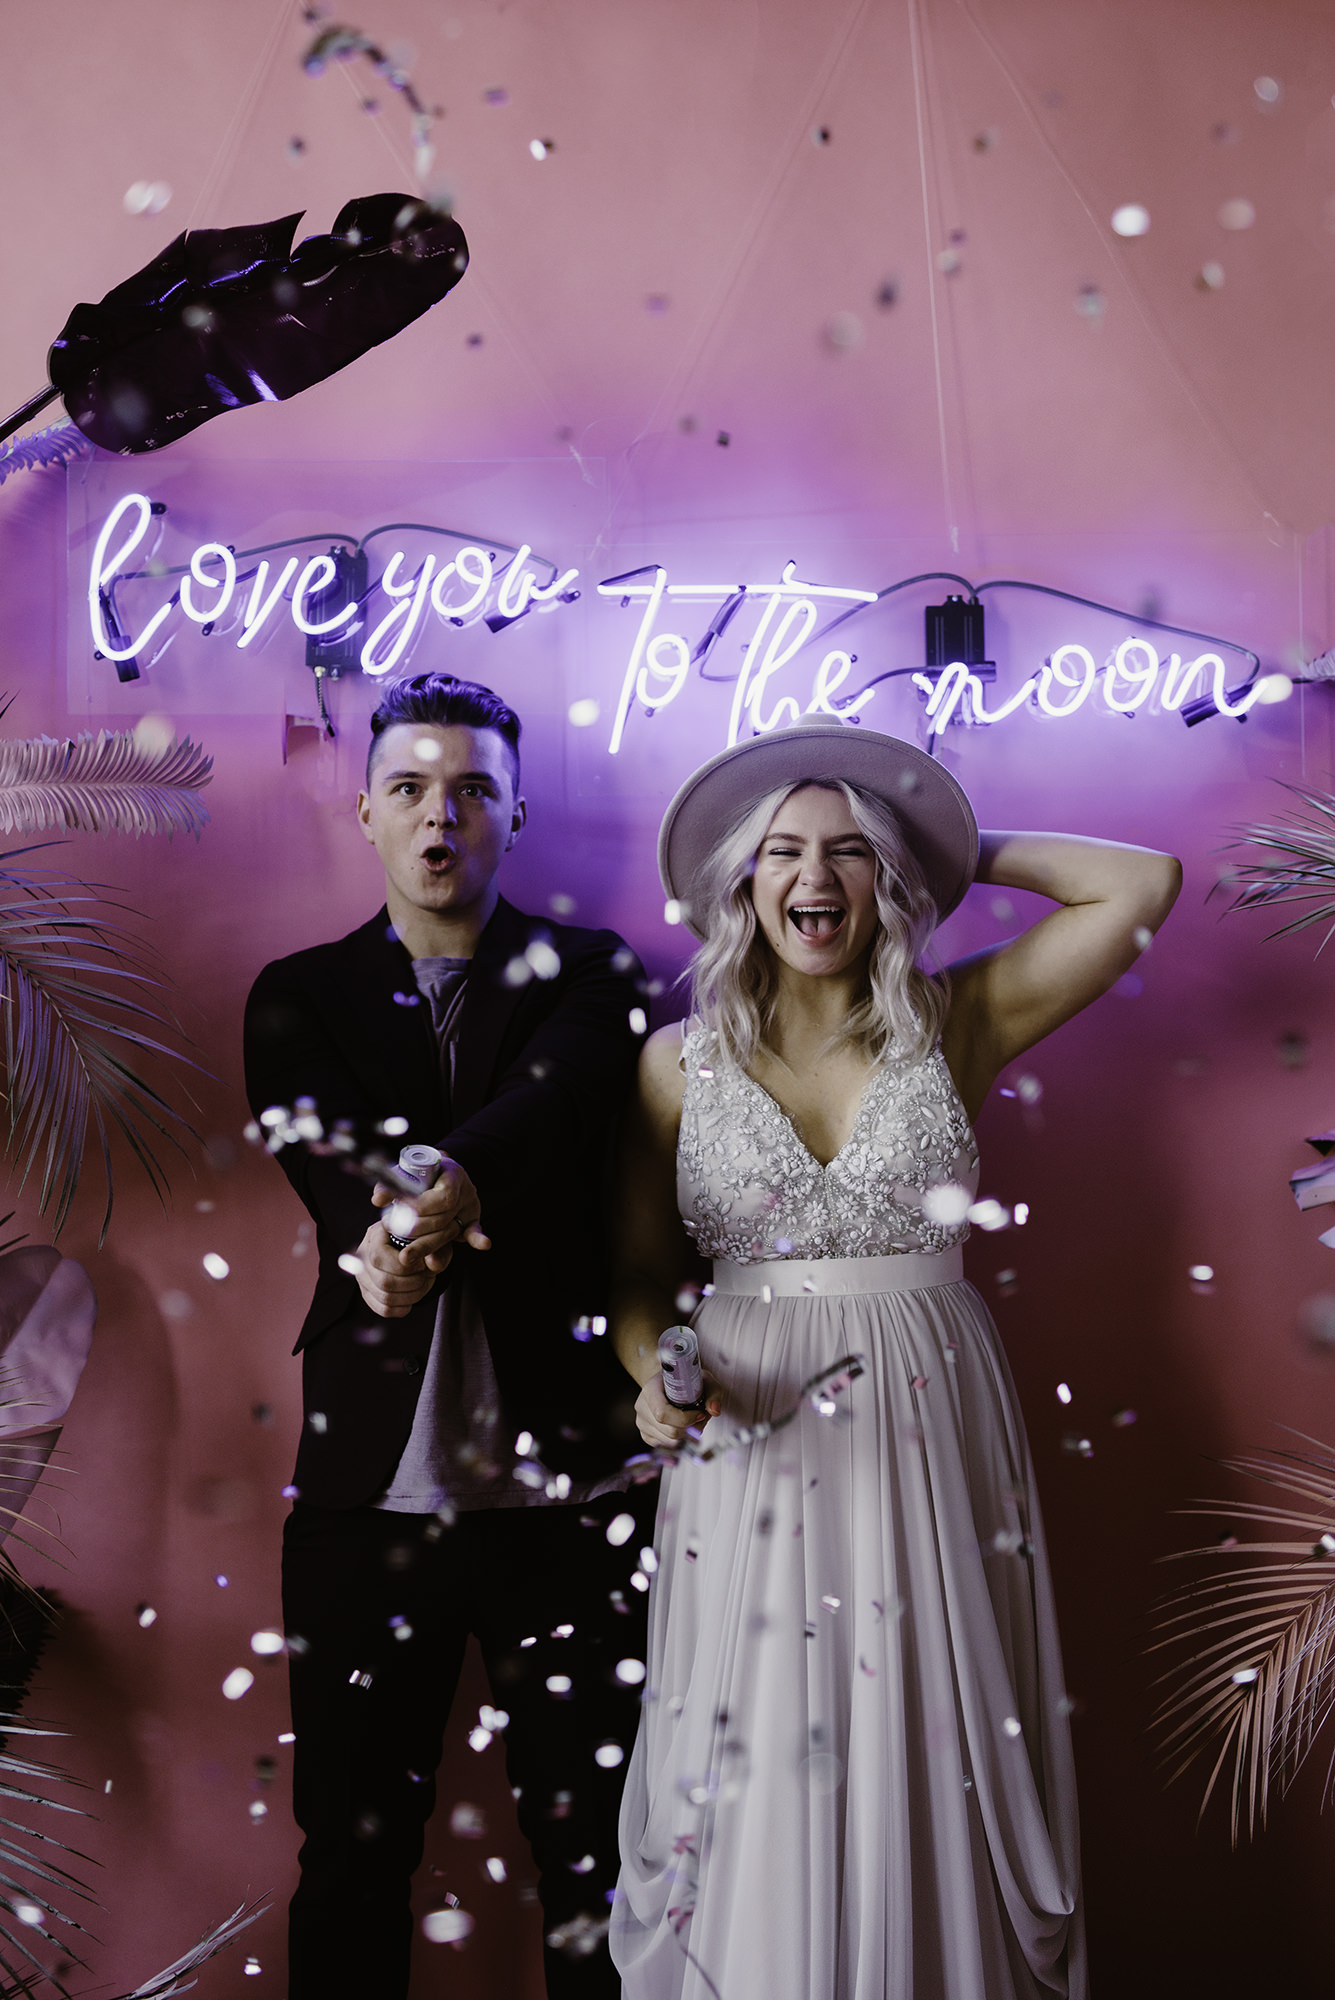 Bride and Groom Neon Sign